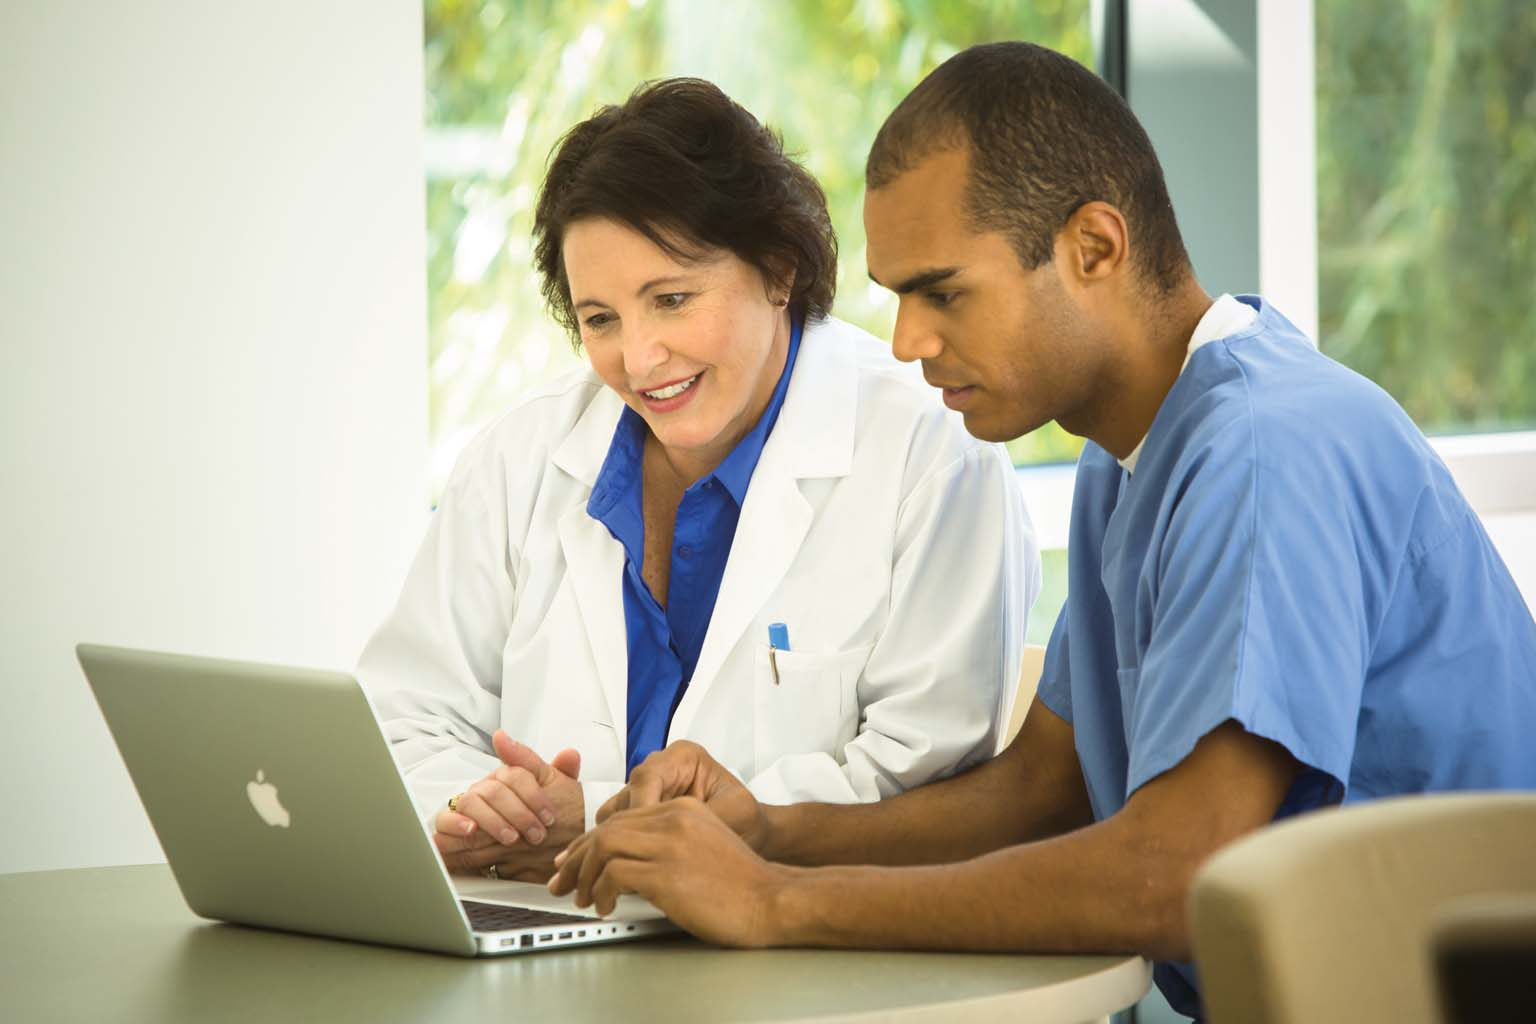 doctor and nurse discussing information on laptop